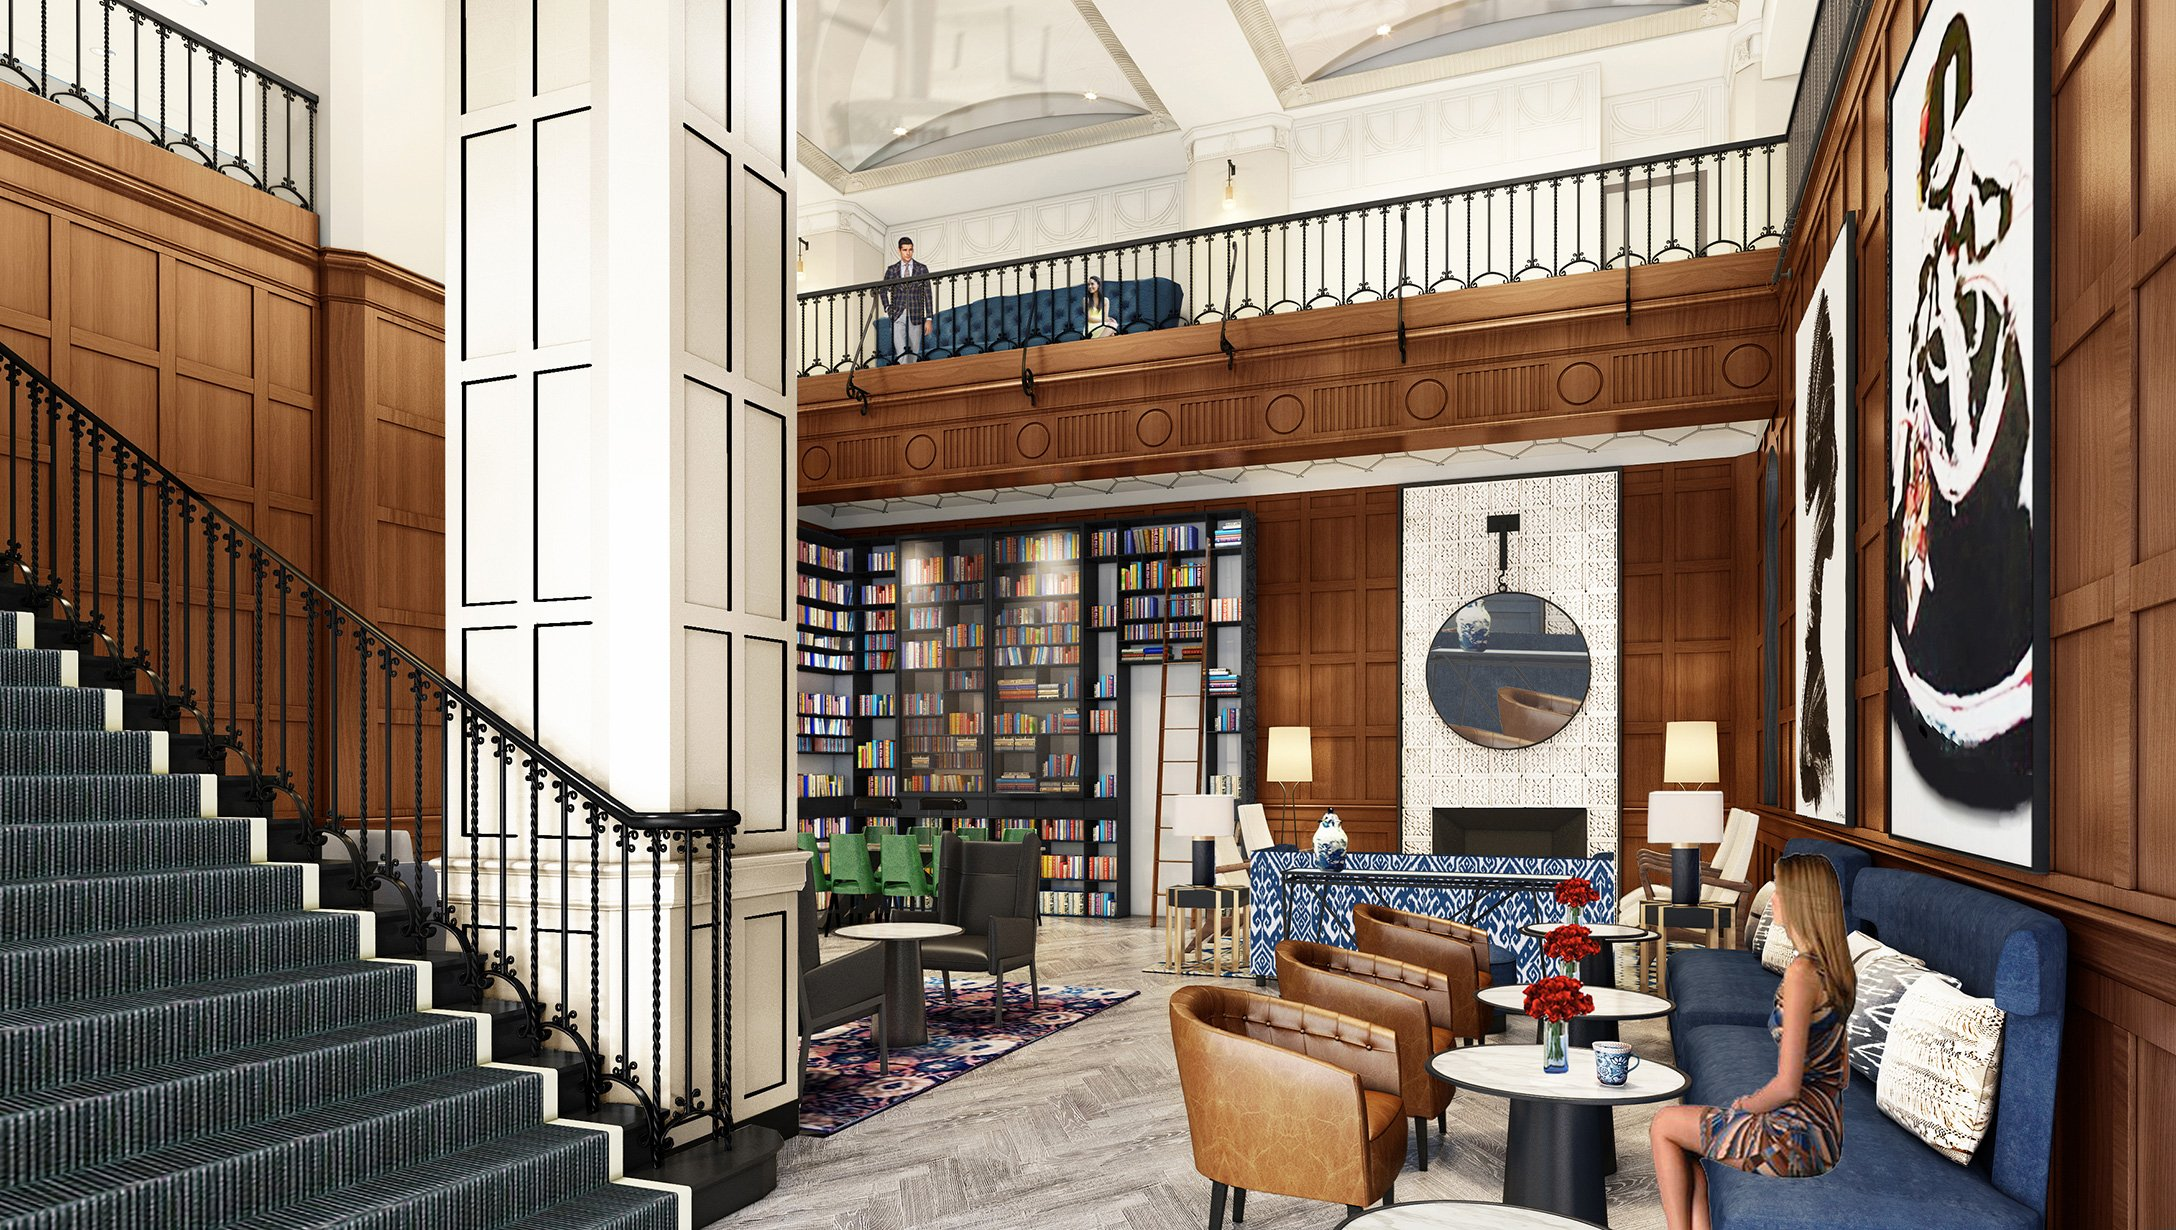 A new grand bookcase that covers the full height of the room will showcase the hotel's library of autographed books.